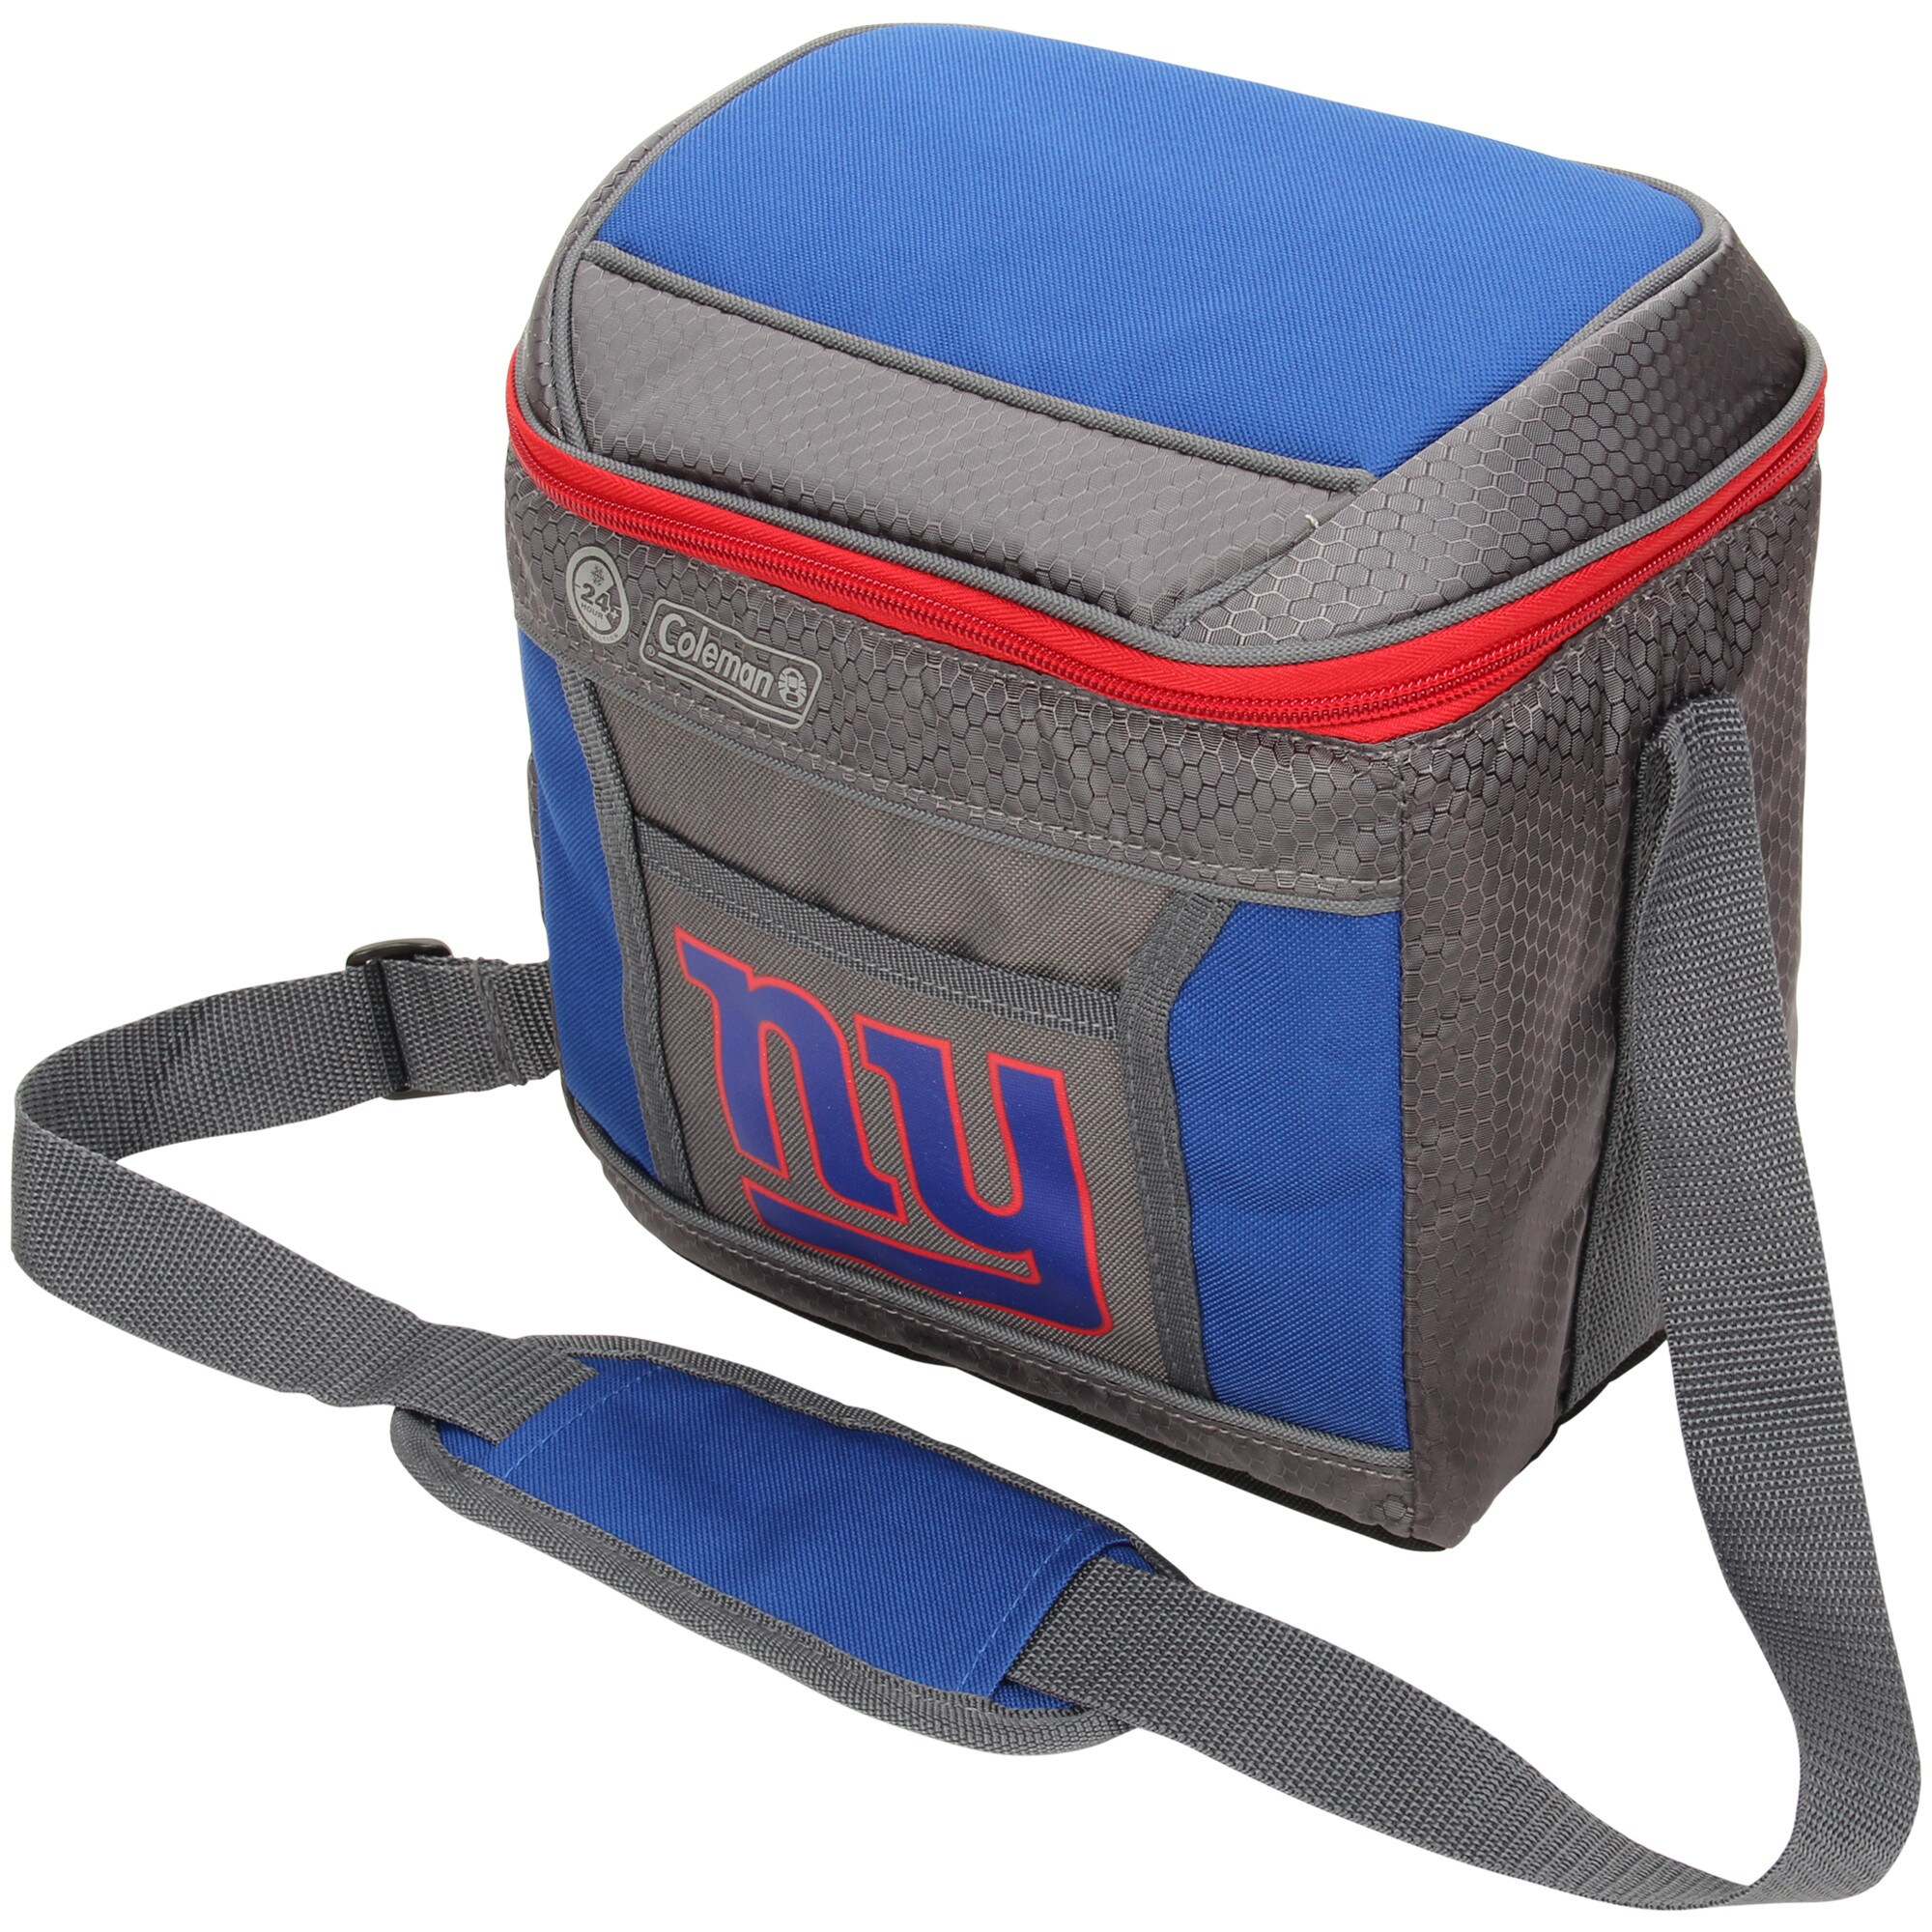 New York Giants Coleman 9-Can 24-Hour Soft-Sided Cooler